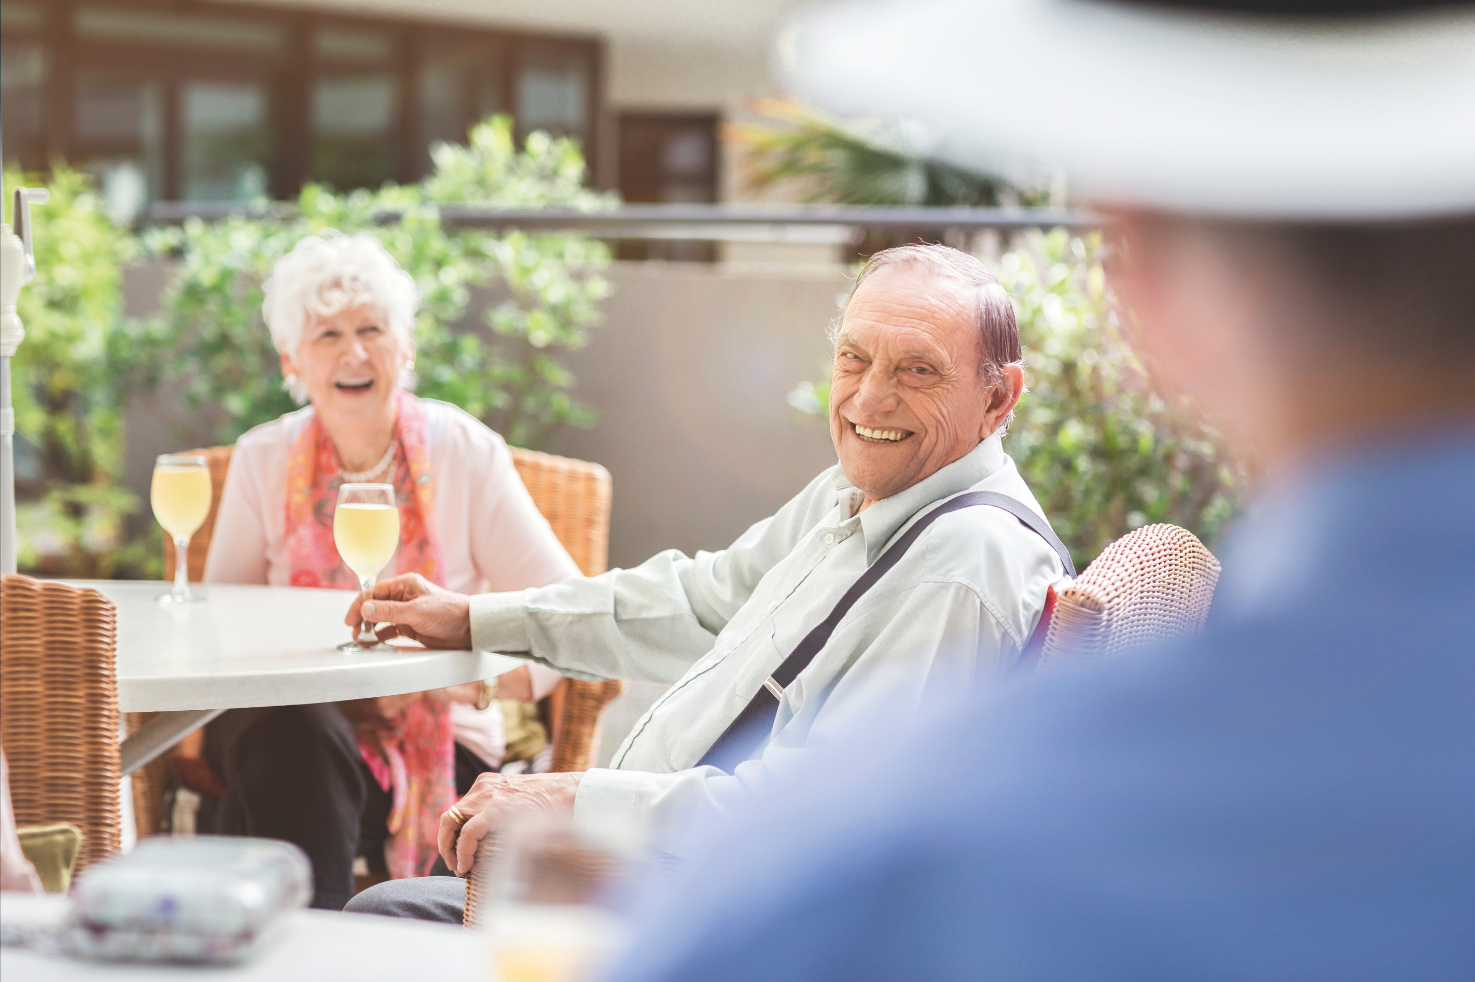 Finding the retirement village that's right for you